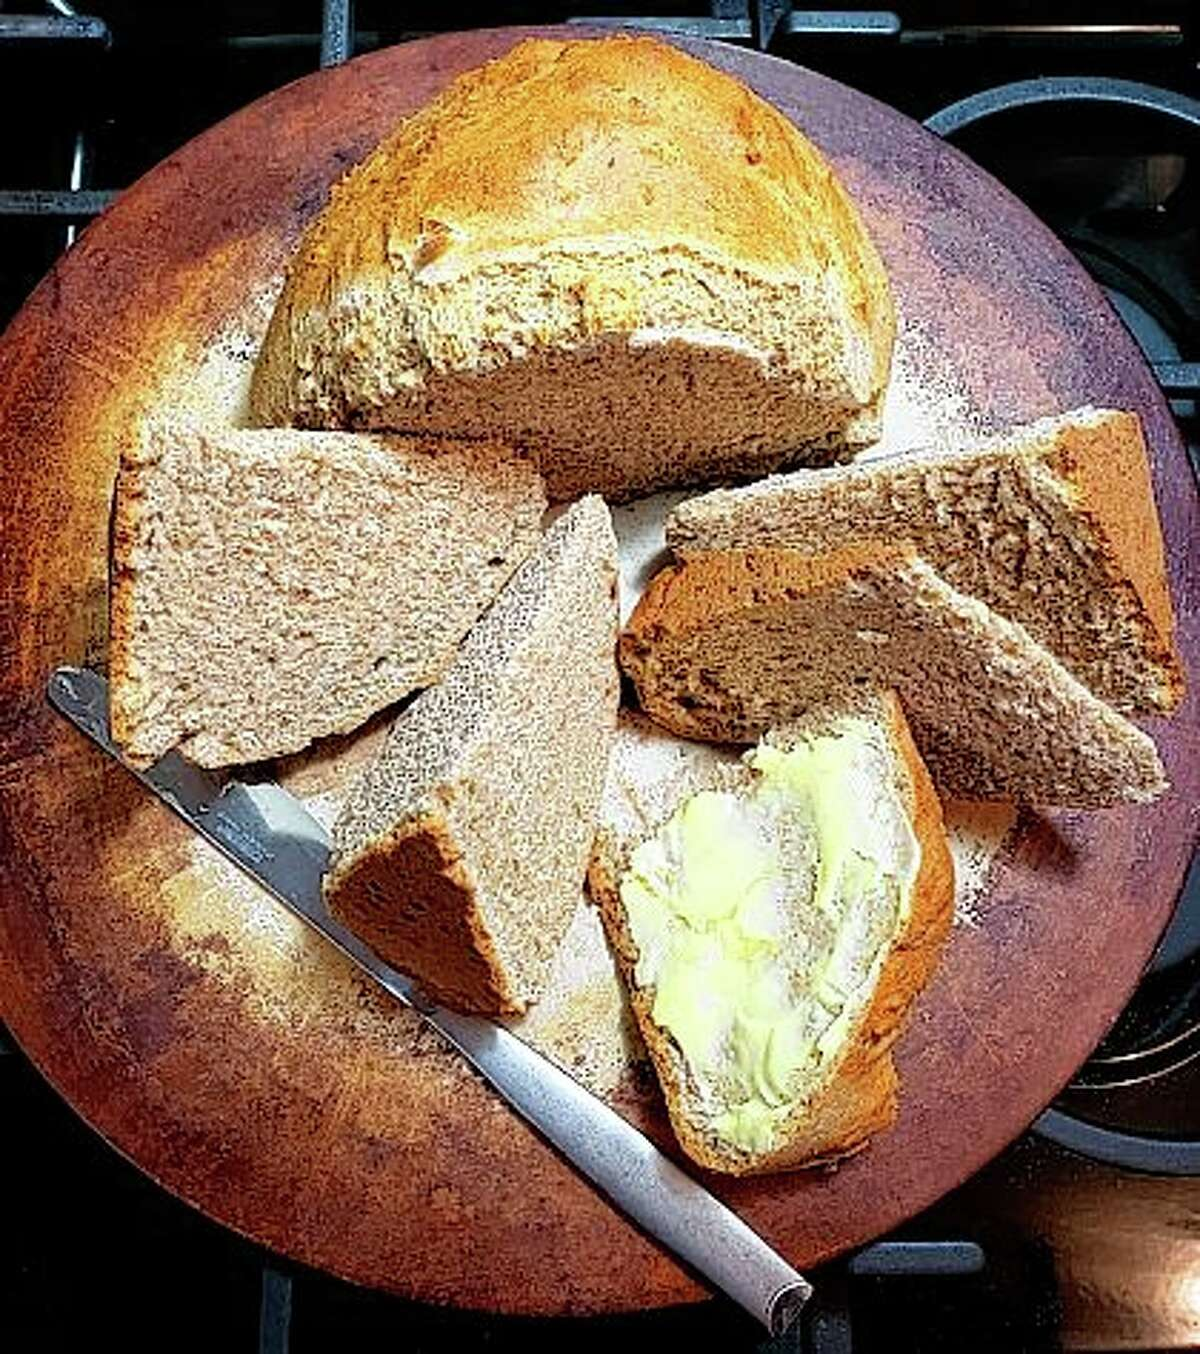 Irish soda bread is dense but flavorful, well-suited as an accompaniment for a hearty Irish stew or on its own with a slather of butter.